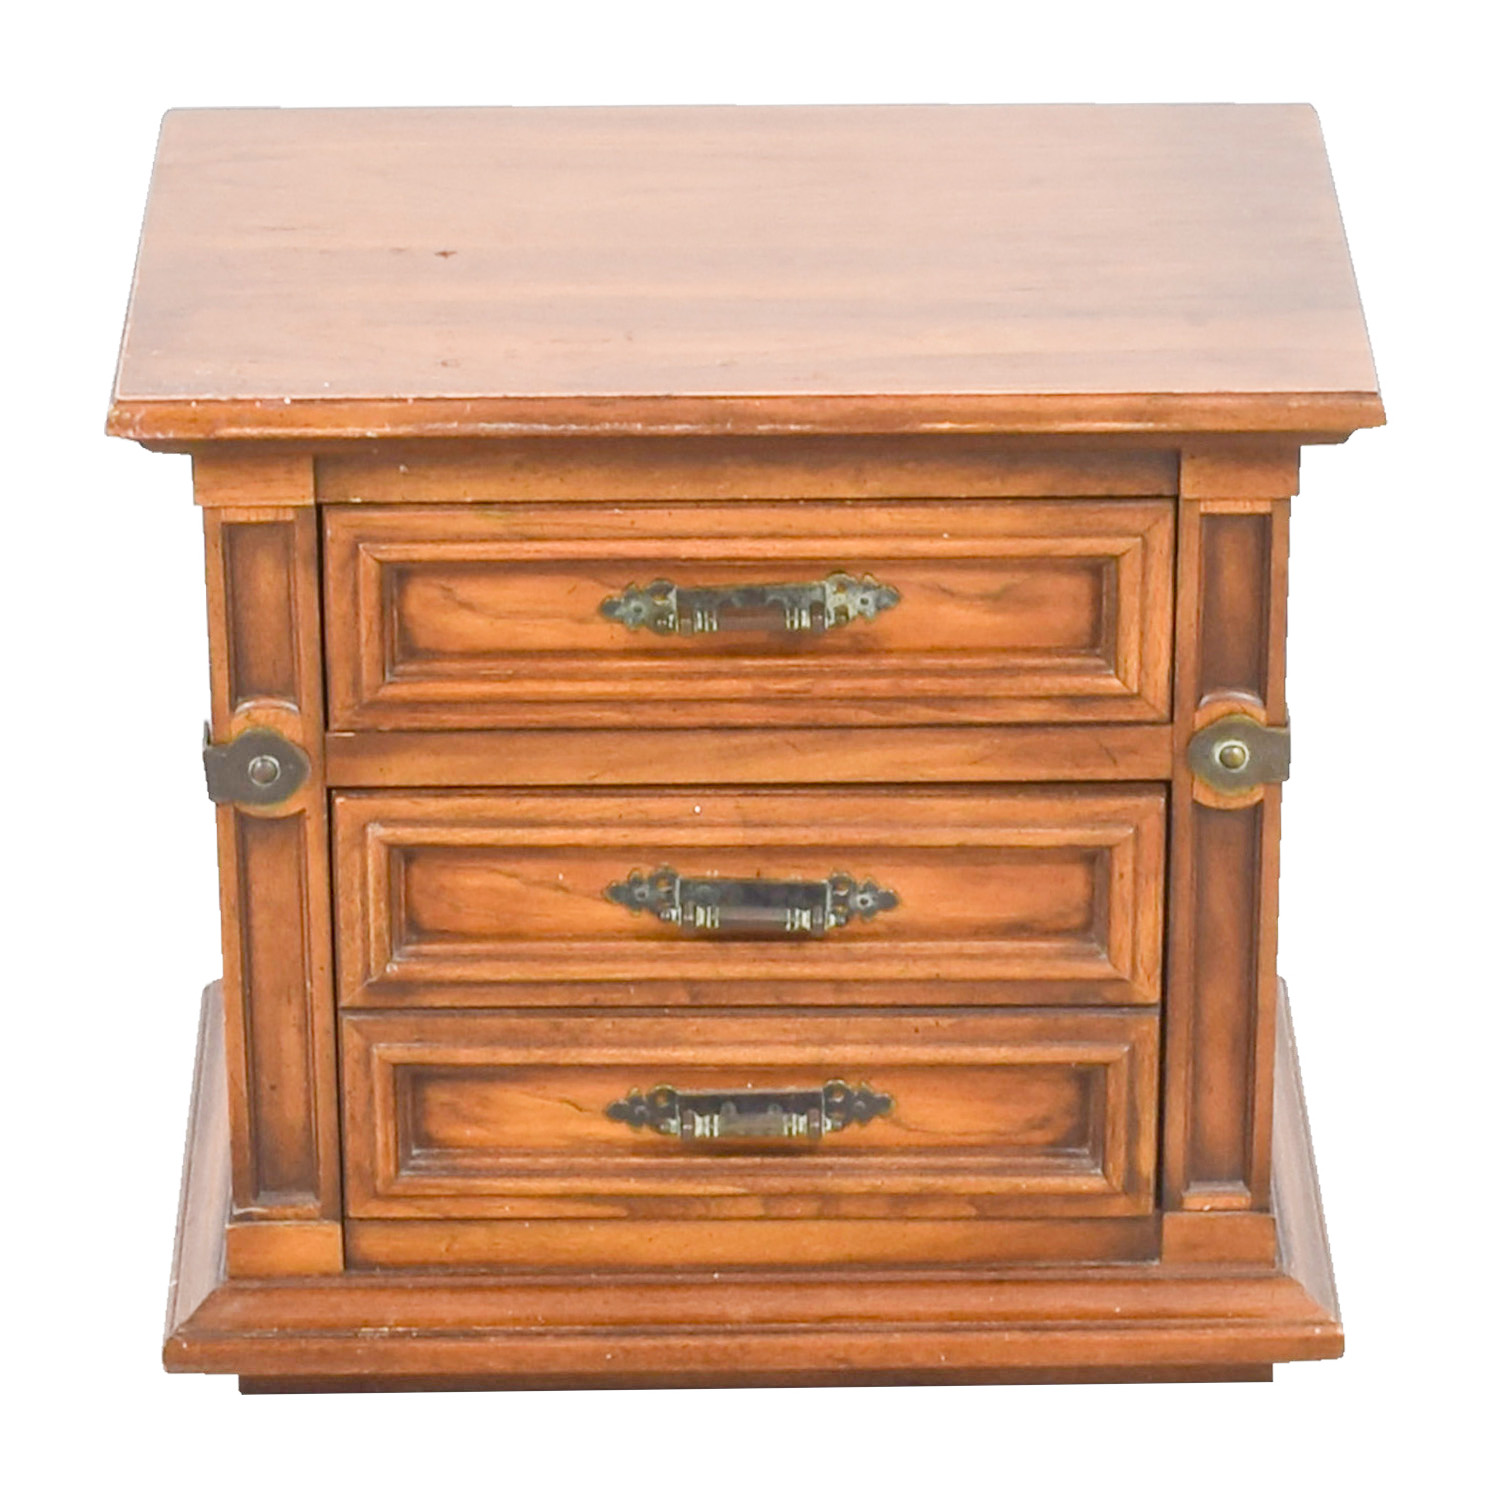 Two-Drawer Wood Nightstand / End Tables